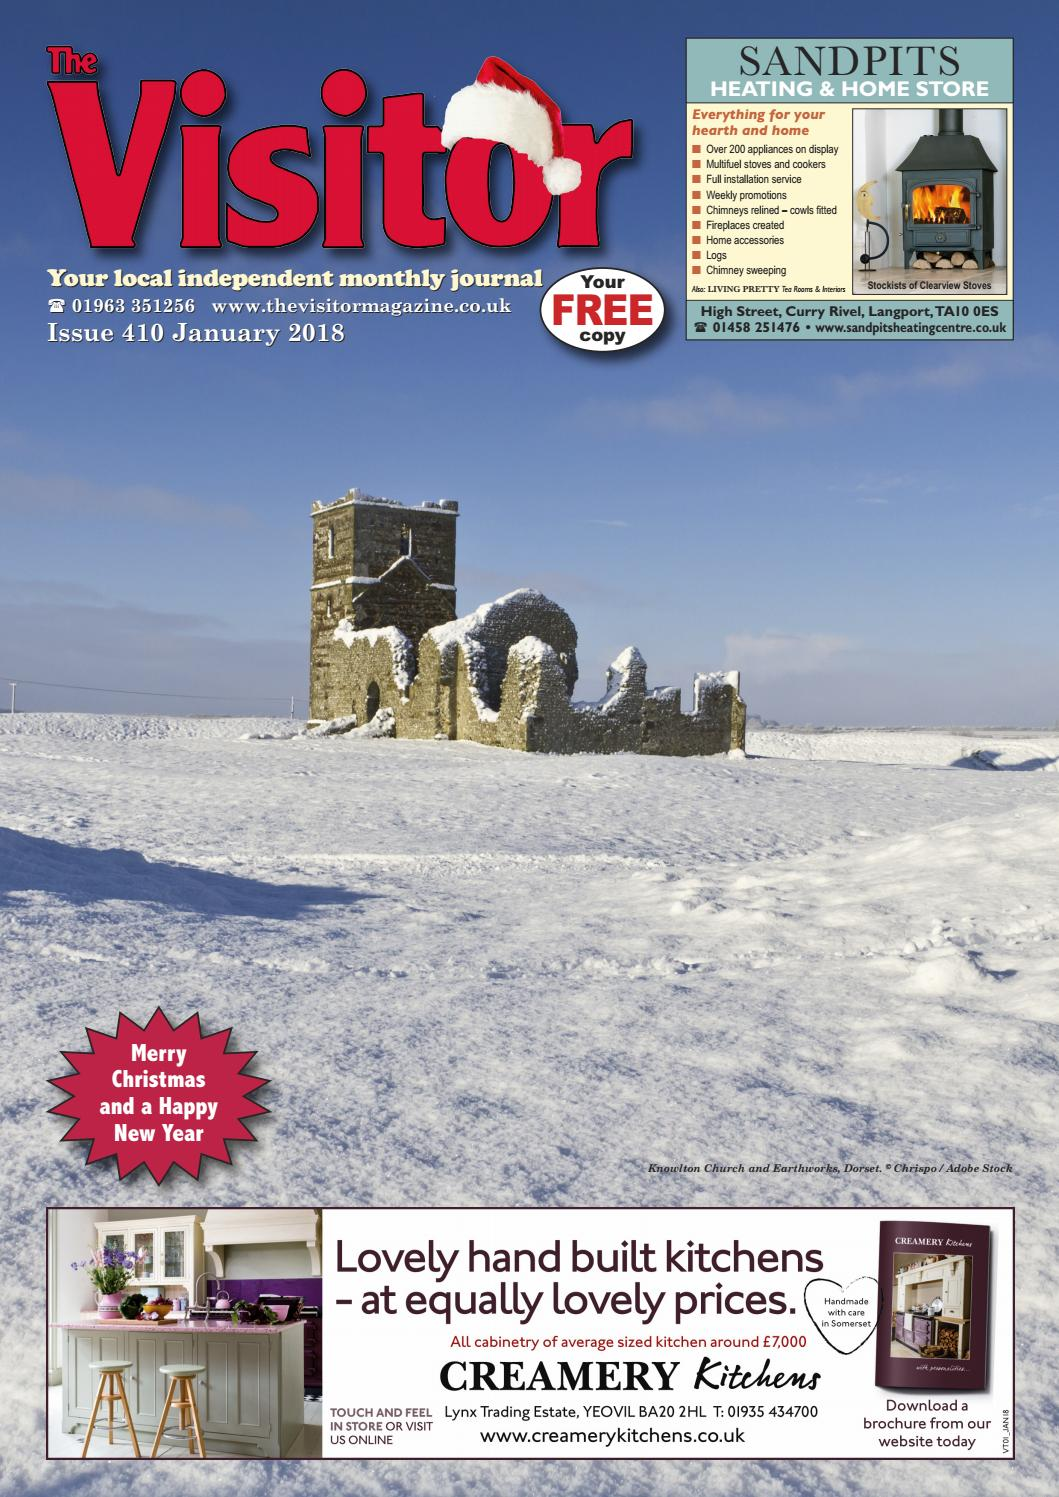 The Visitor Magazine Issue 410 January 2018 by The Visitor